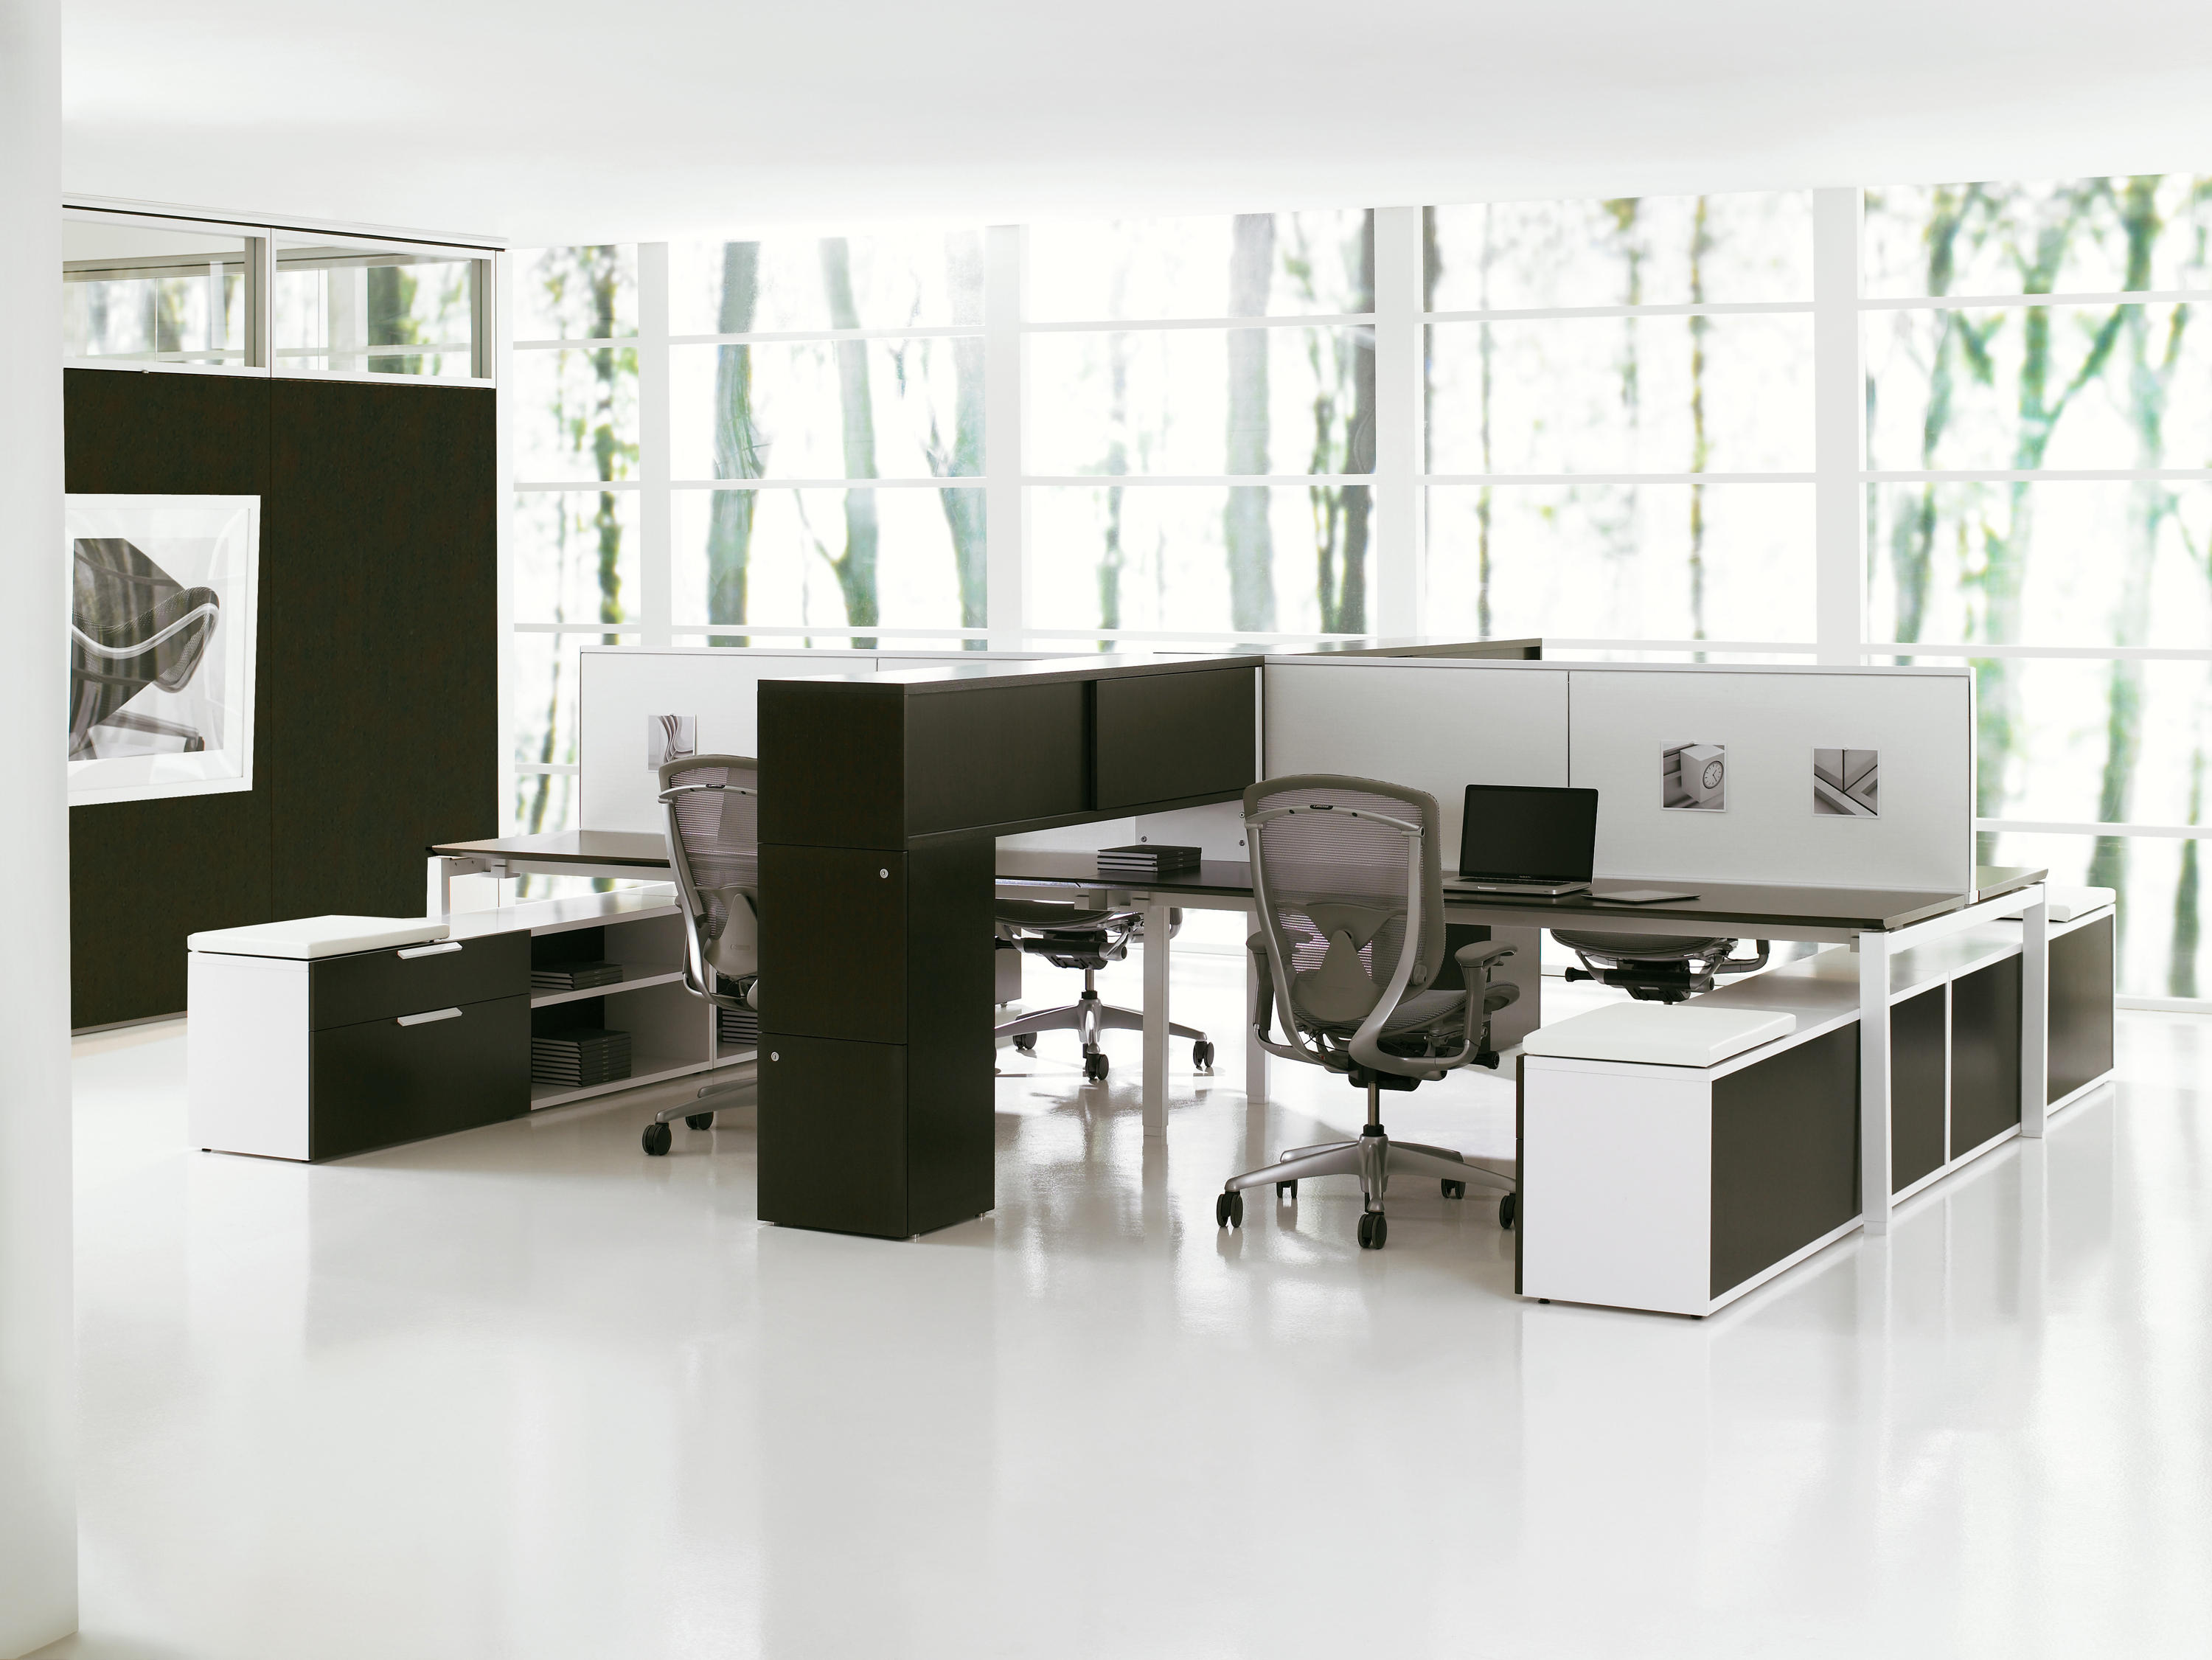 Contessa management chairs from teknion architonic for Furniture 08054